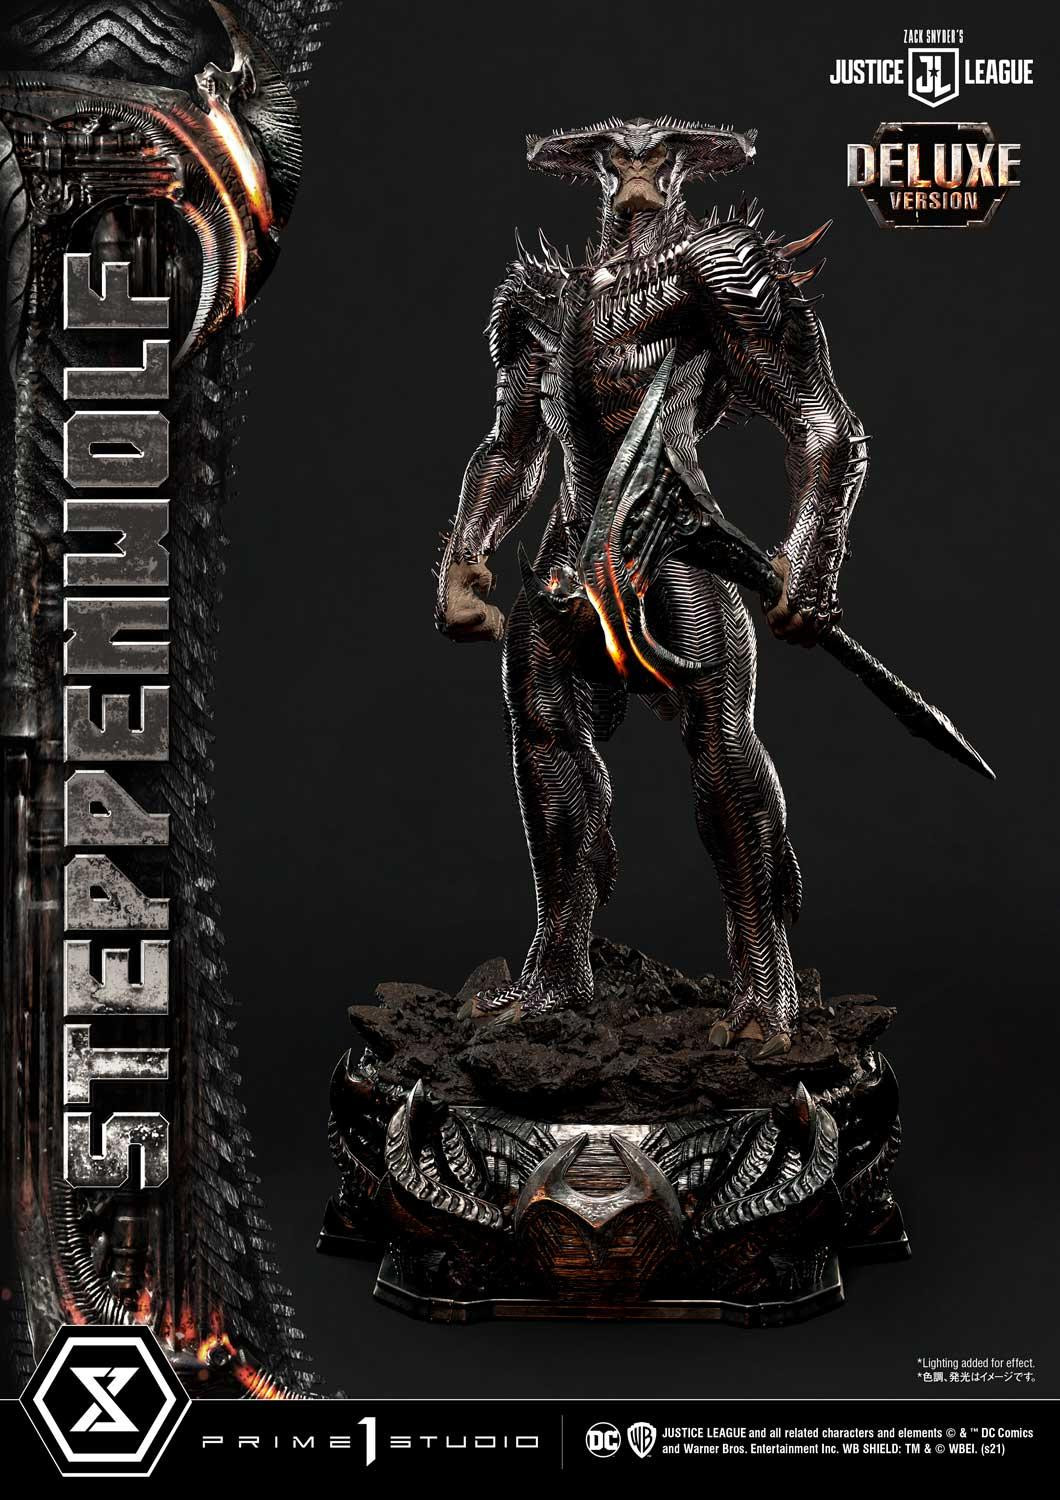 Zack Snyder's Justice League – Steppenwolf 1/3 Scale Statue Mmjl-09dx_a10